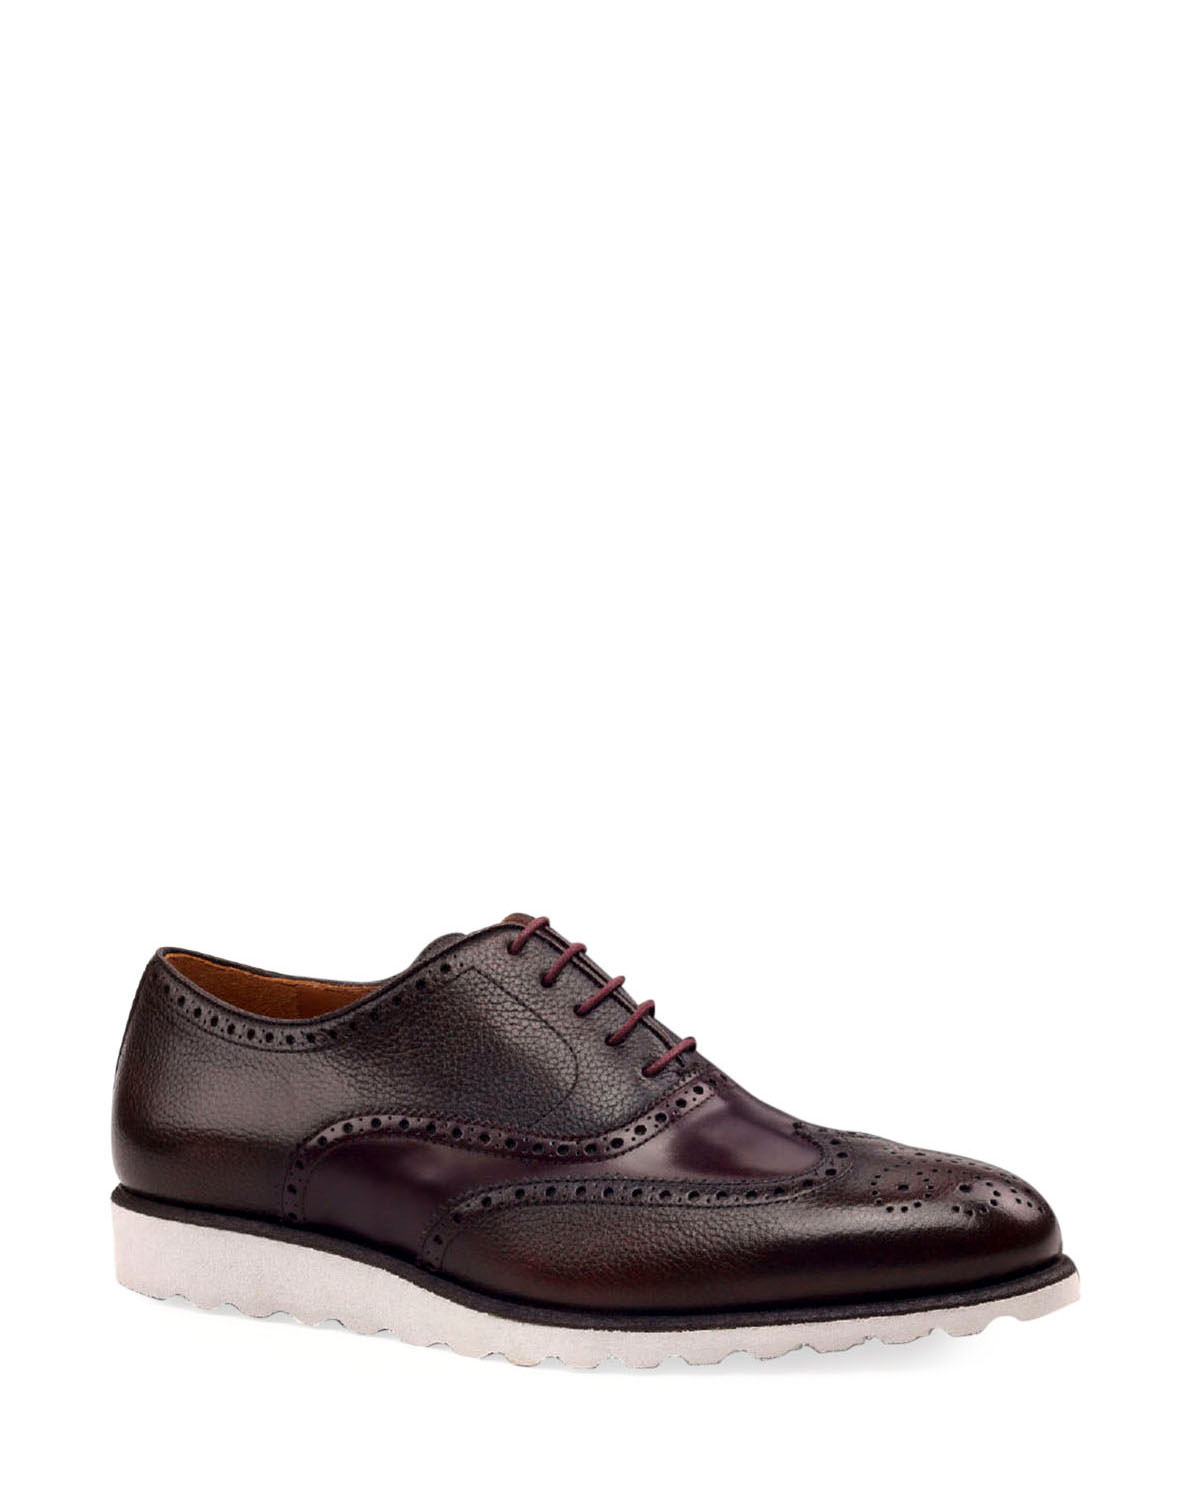 Men's Trax Wing-Tip Leather Platform Oxford Shoes